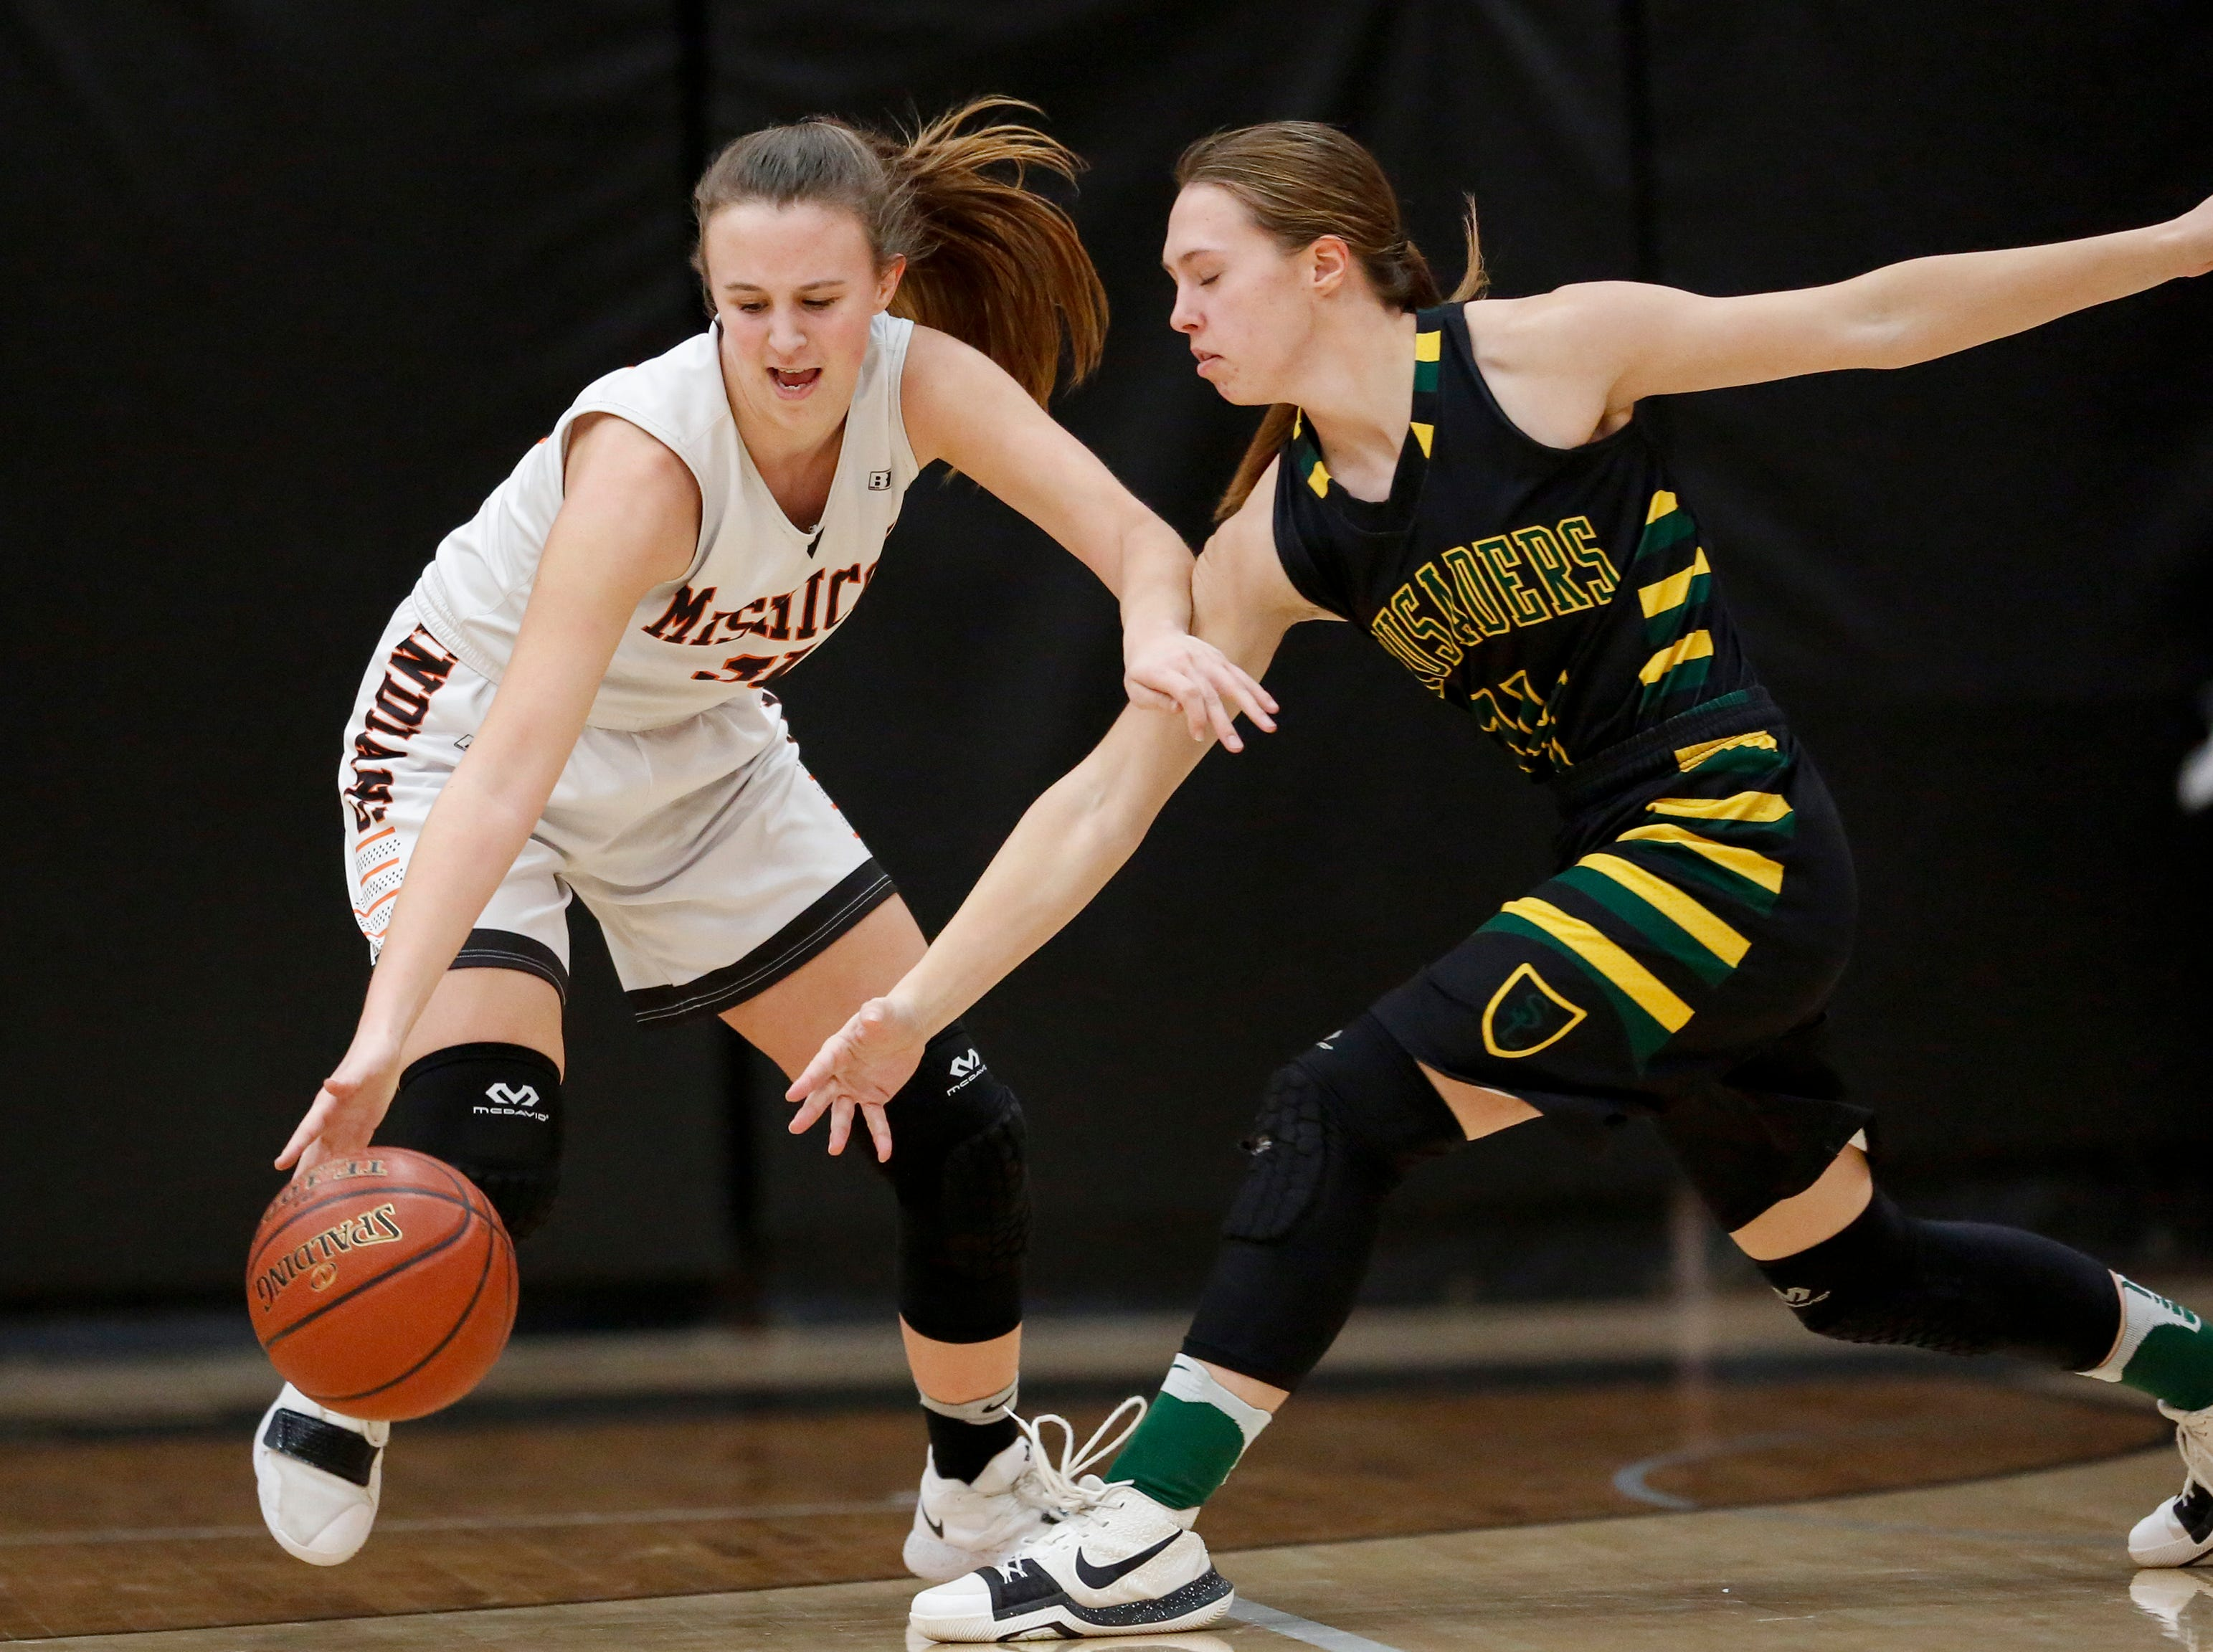 Mishicot's Kylie Schmidt (31) steals the ball from Sheboygan Area Lutheran's Makell Babak (14) during a Big East Conference matchup at Mishicot High School Friday, January 11, 2019, in Mishicot, Wis. Joshua Clark/USA TODAY NETWORK-Wisconsin